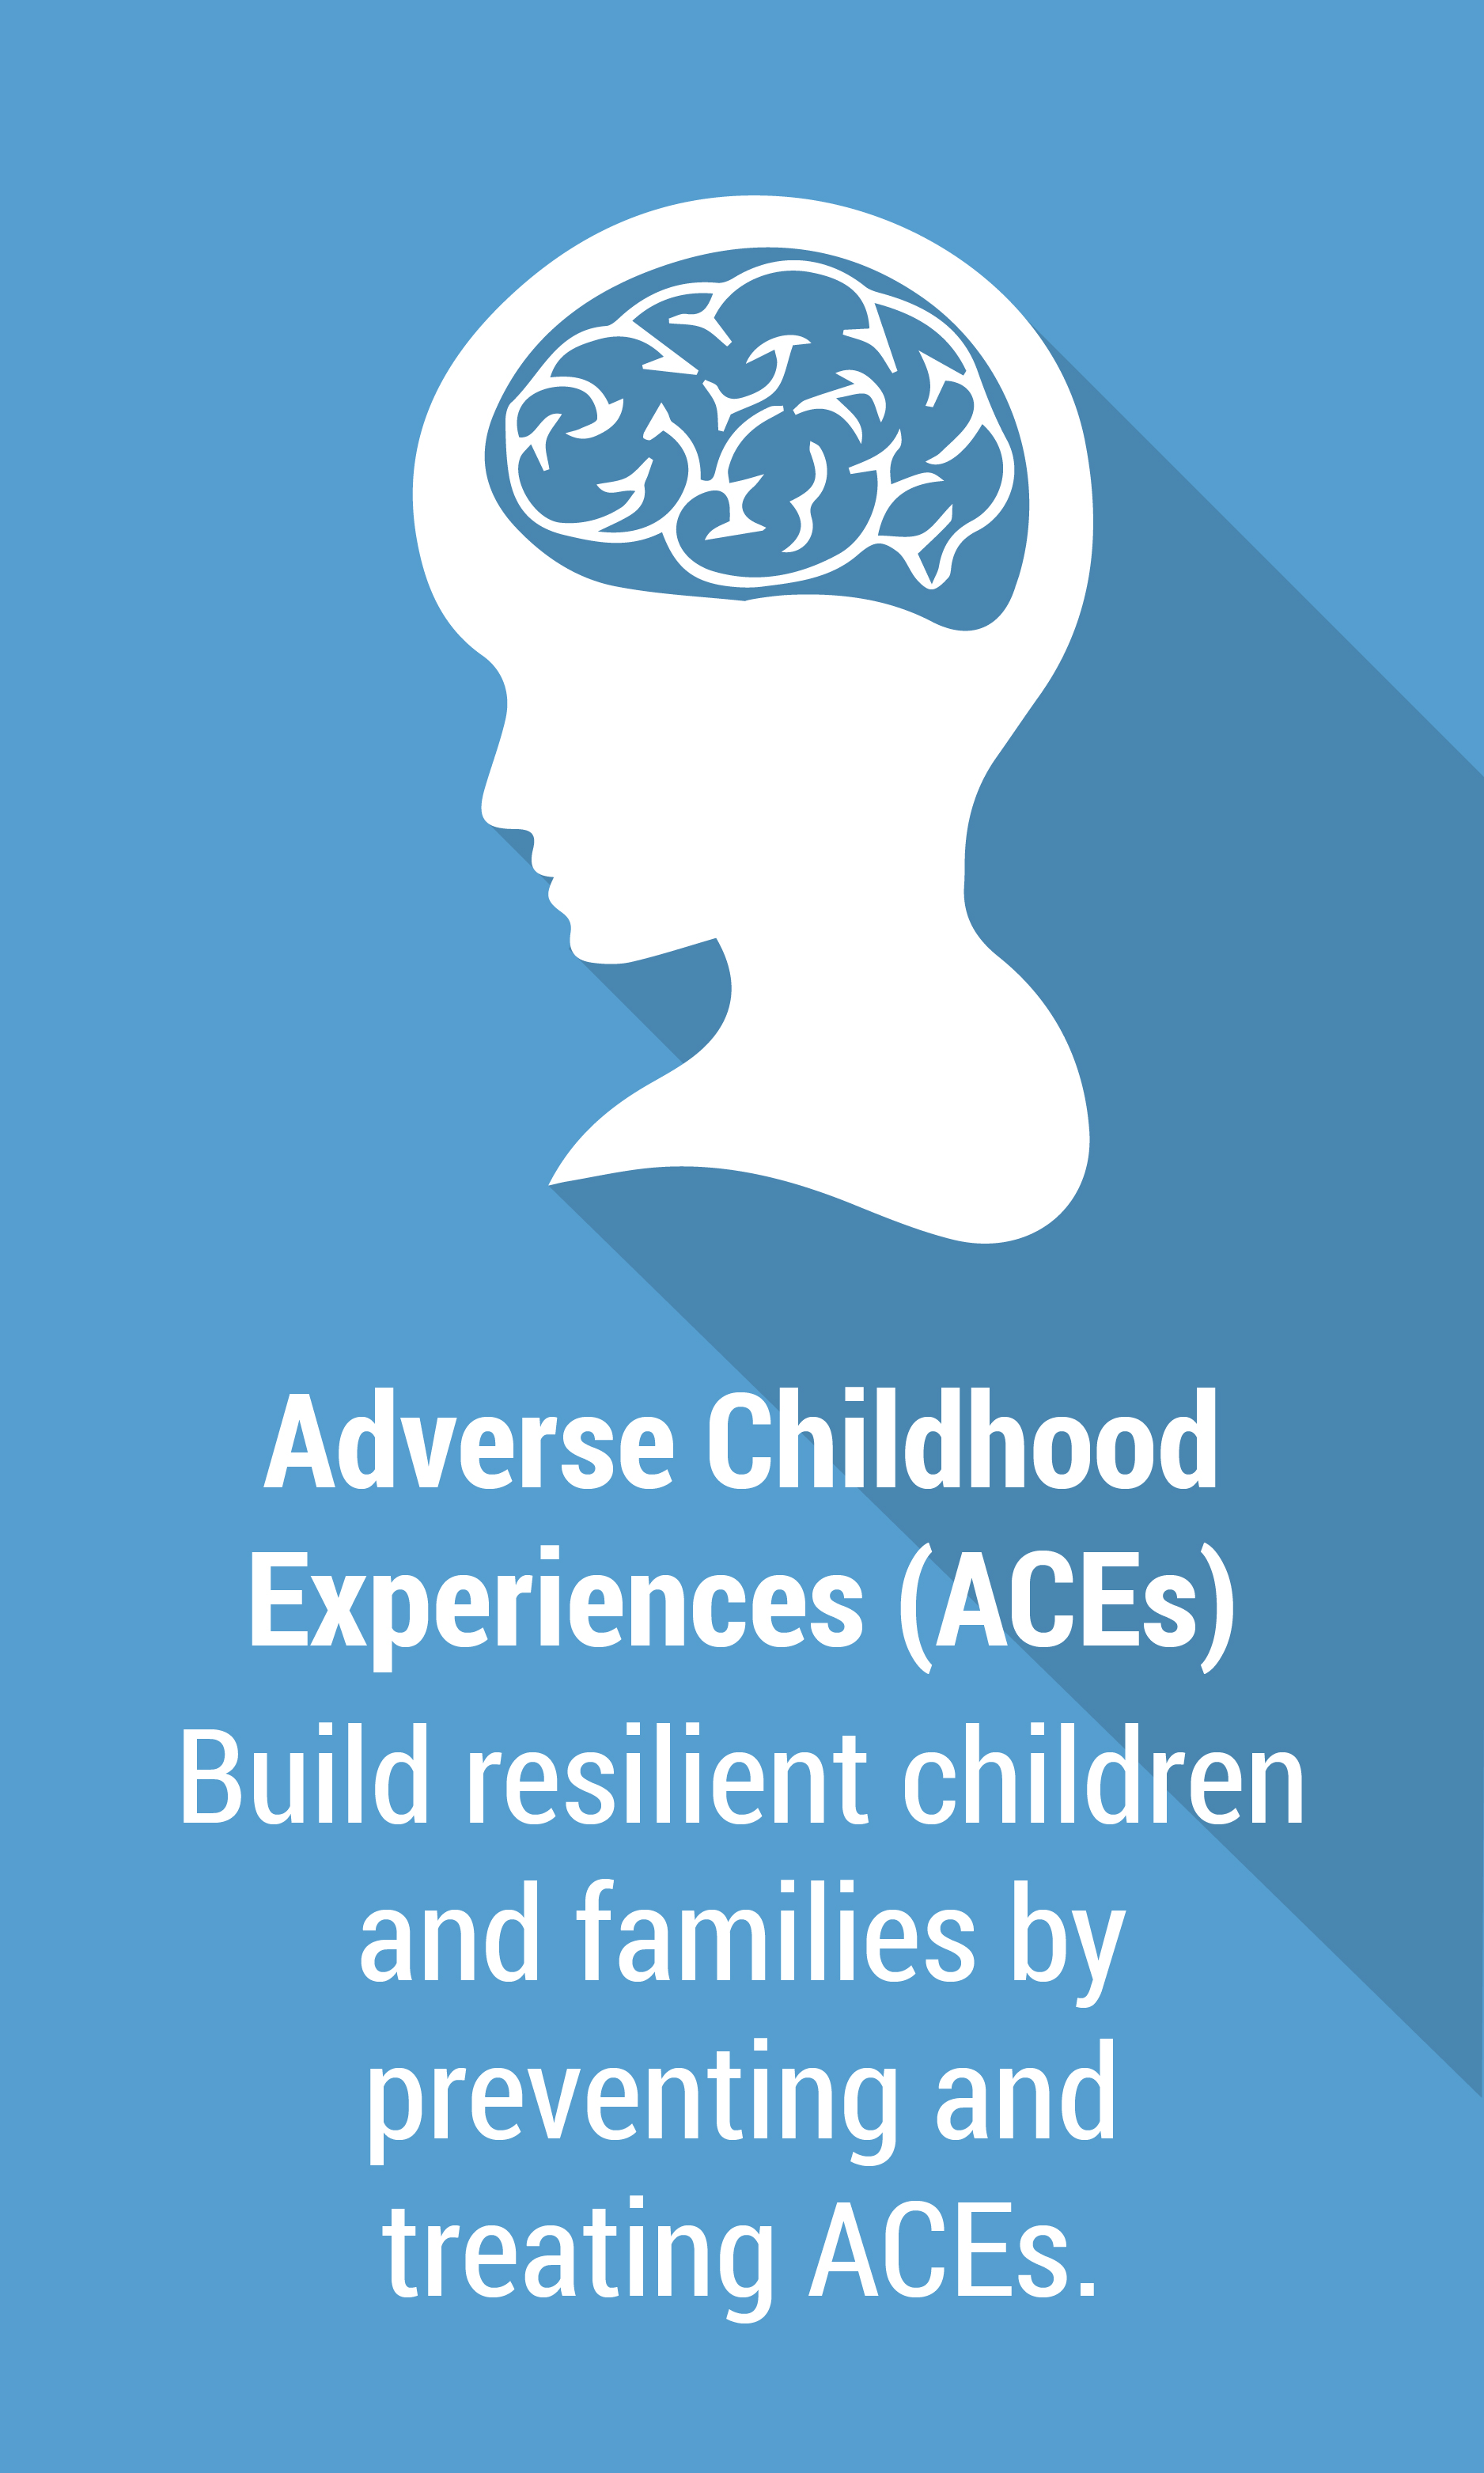 Adverse Childhood Experiences (ACEs) - Addressing the Issues